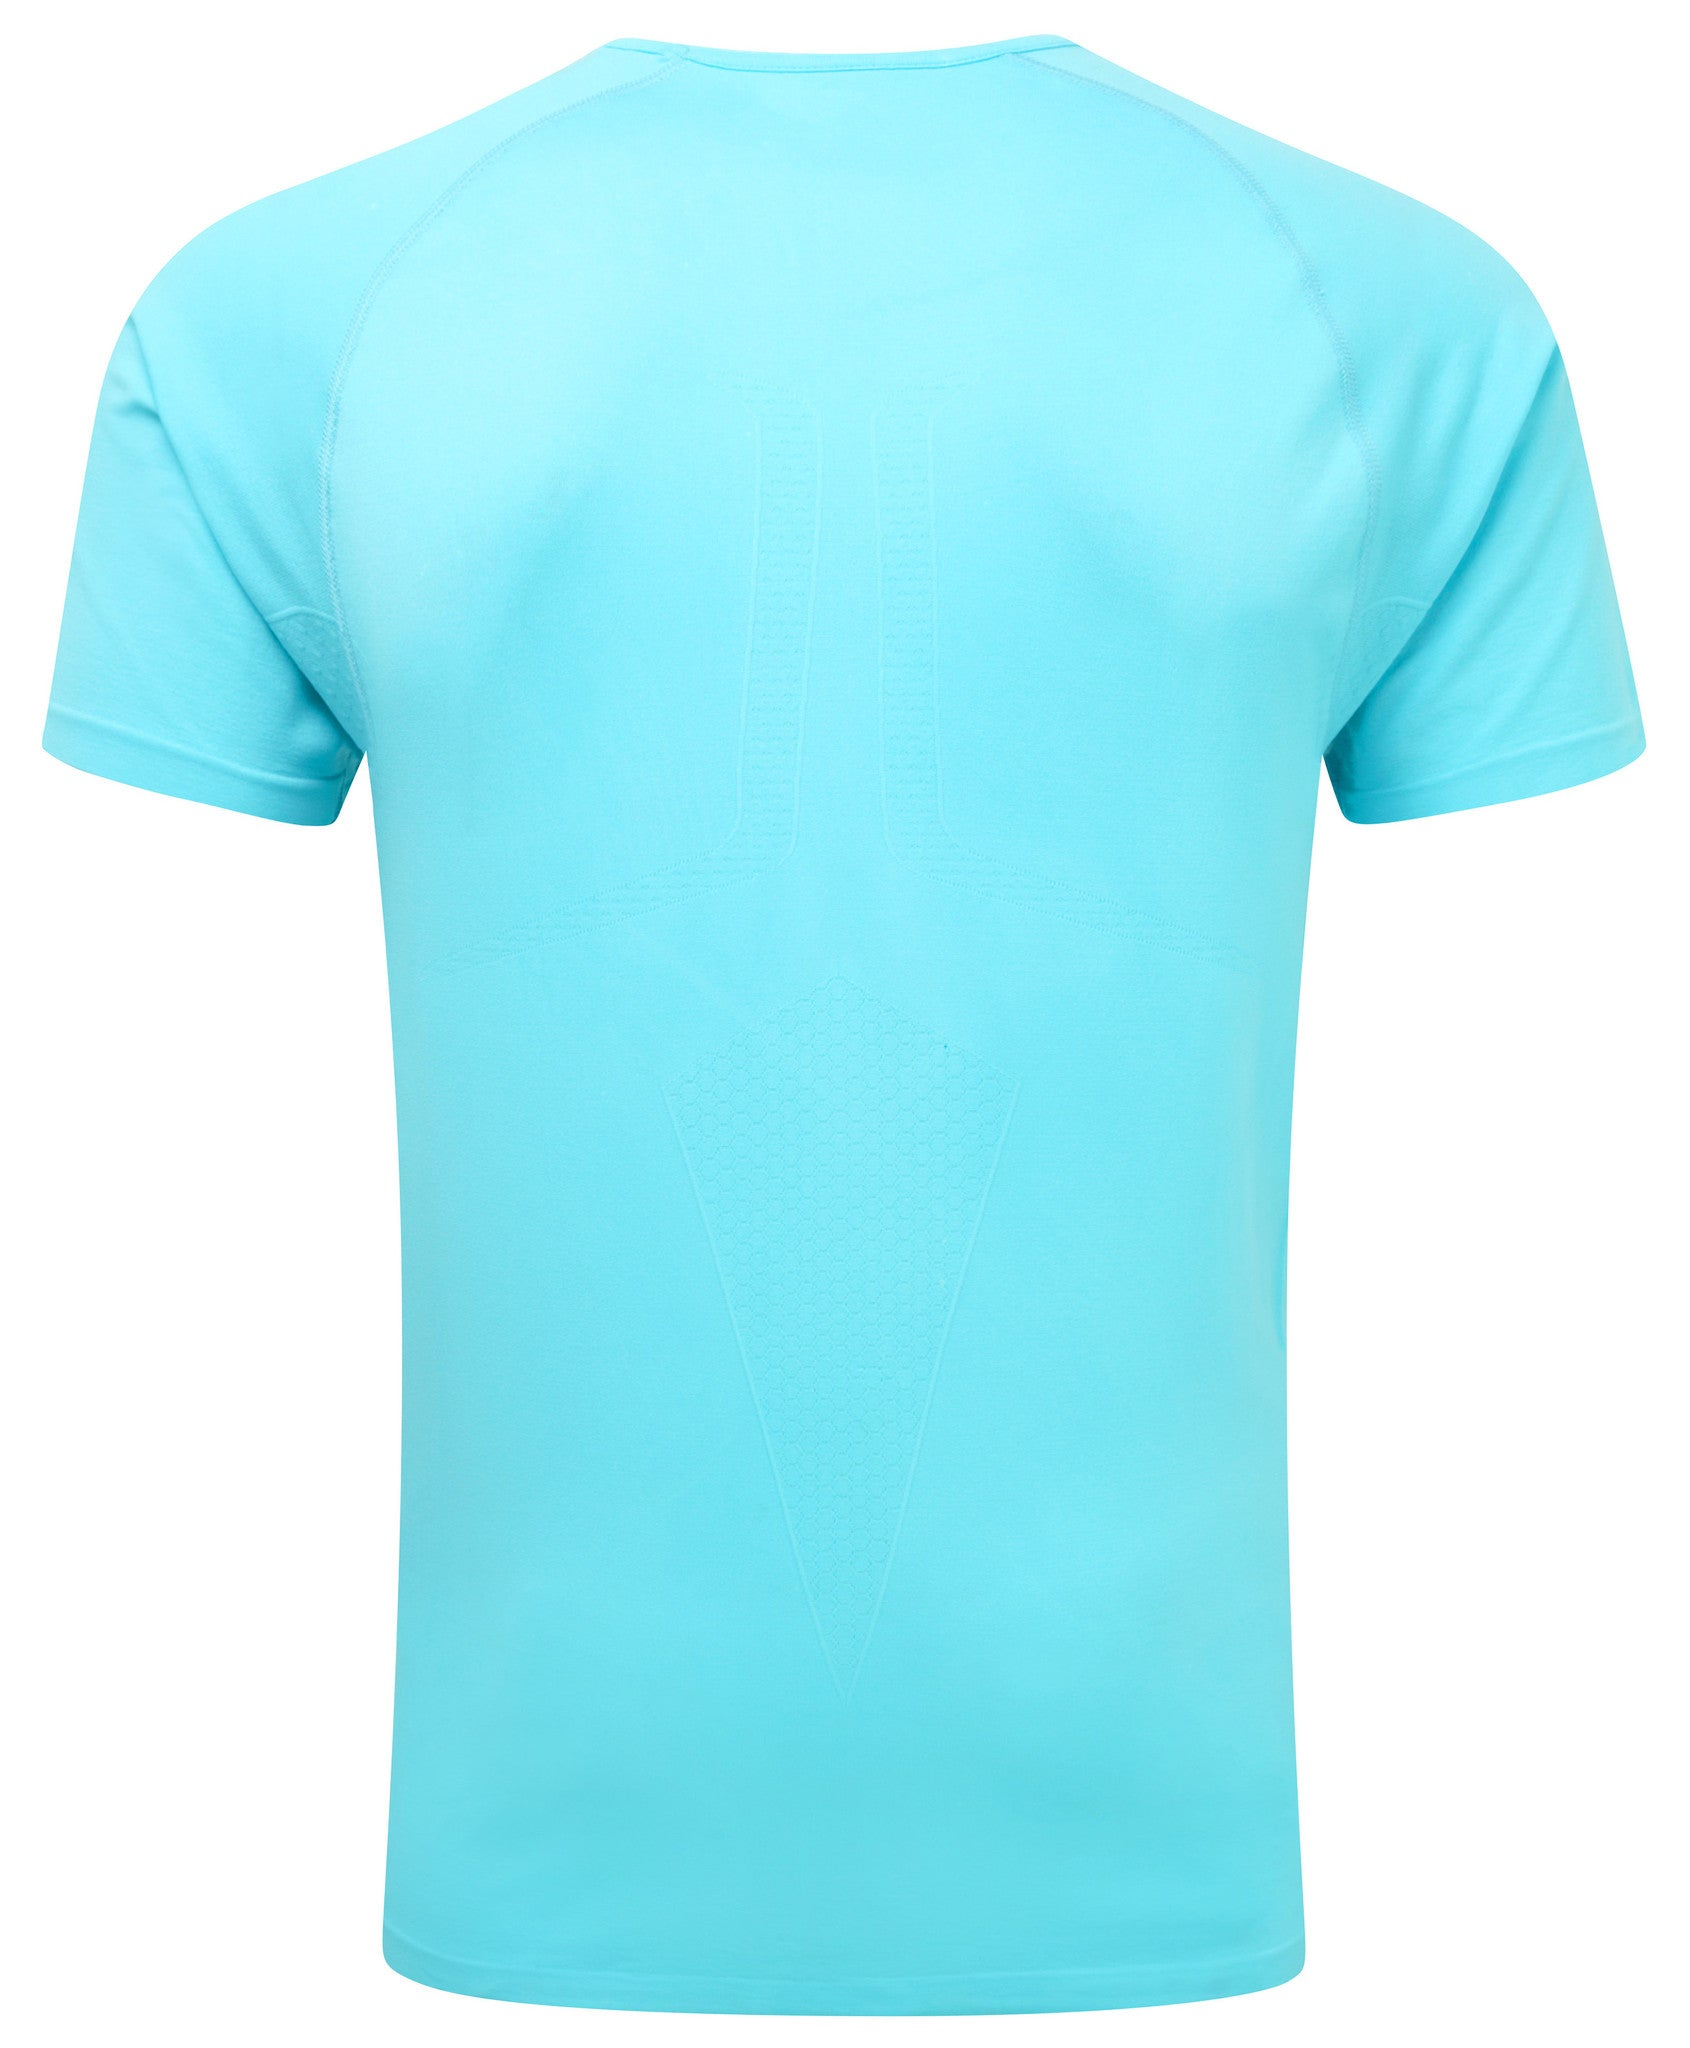 Engineered Short Sleeved Tee - Fresh Aqua